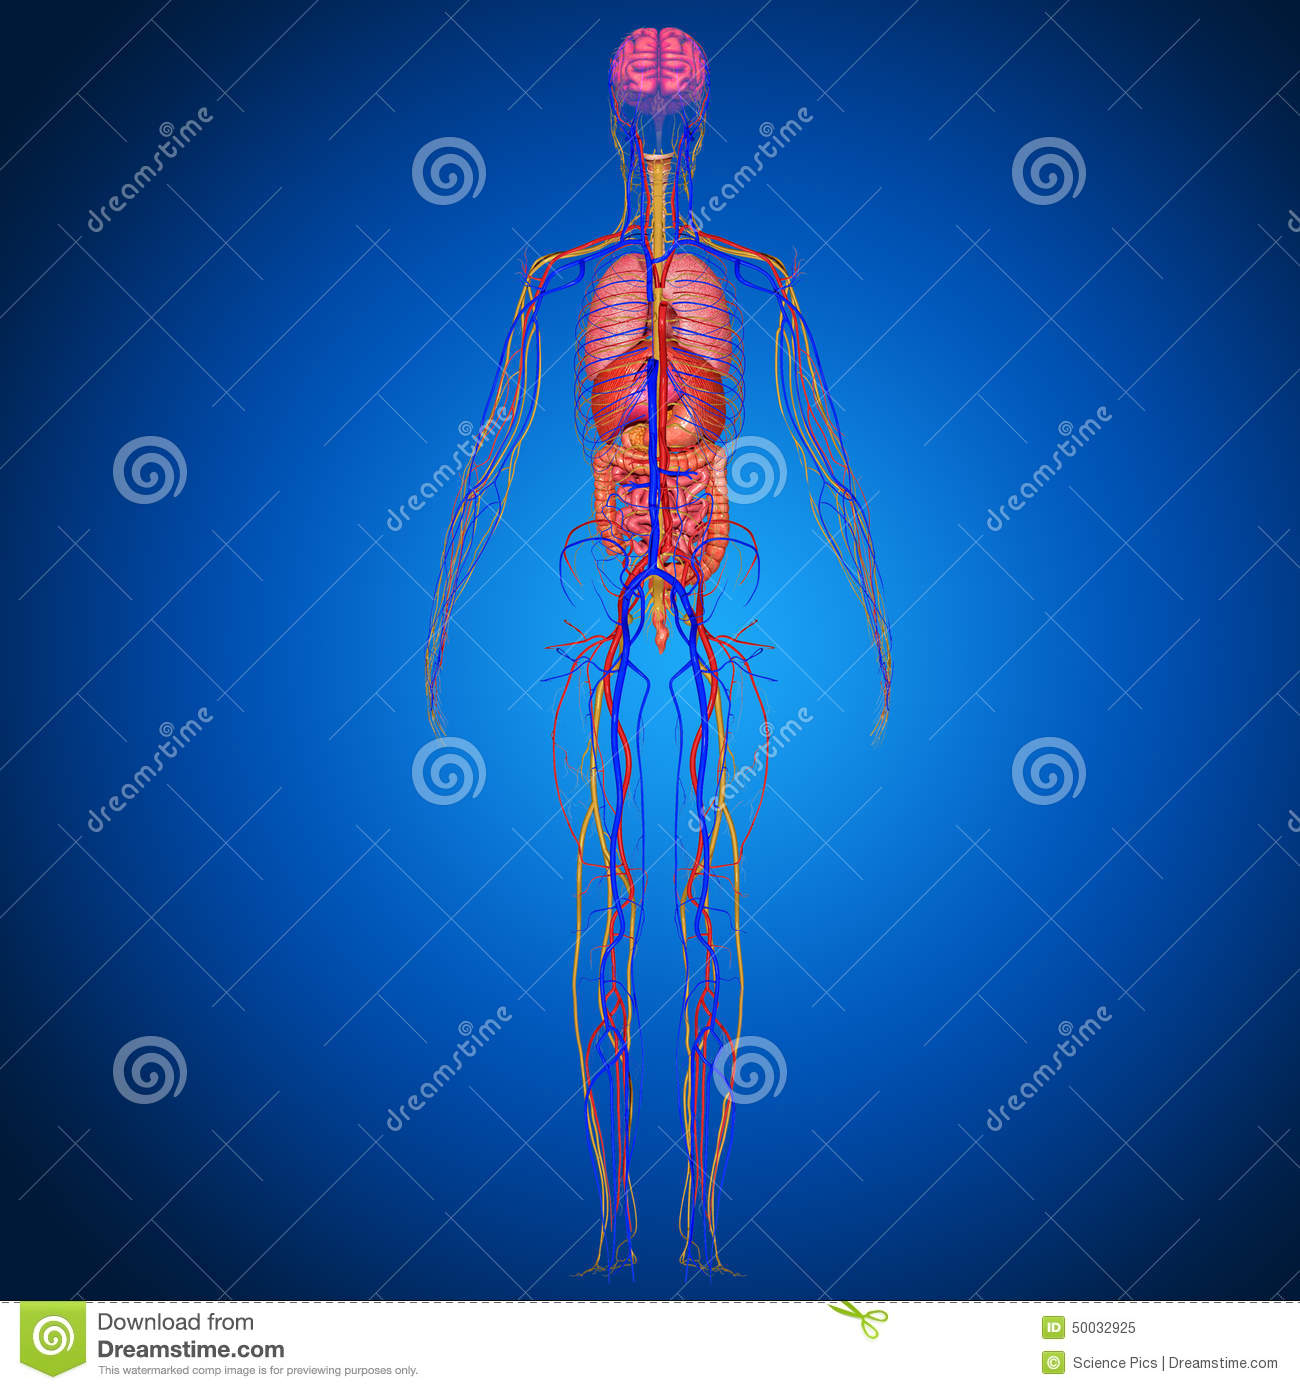 Human Anatomy stock illustration. Illustration of diagram - 50032925